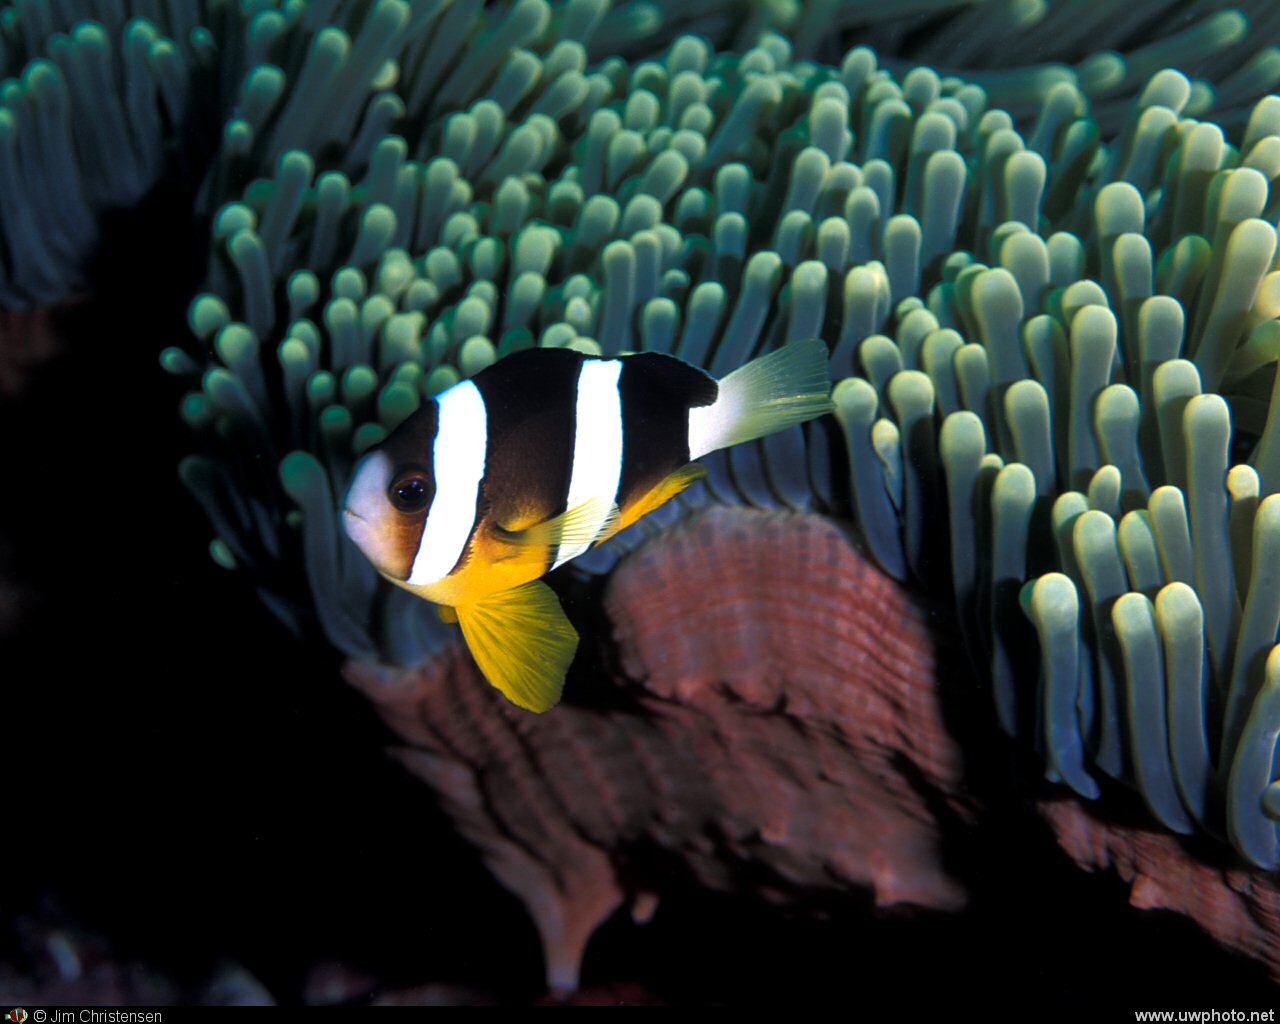 Clownfish: Clark&lrm;s Anemonefish <I>Amphiprion clarkii</I>.